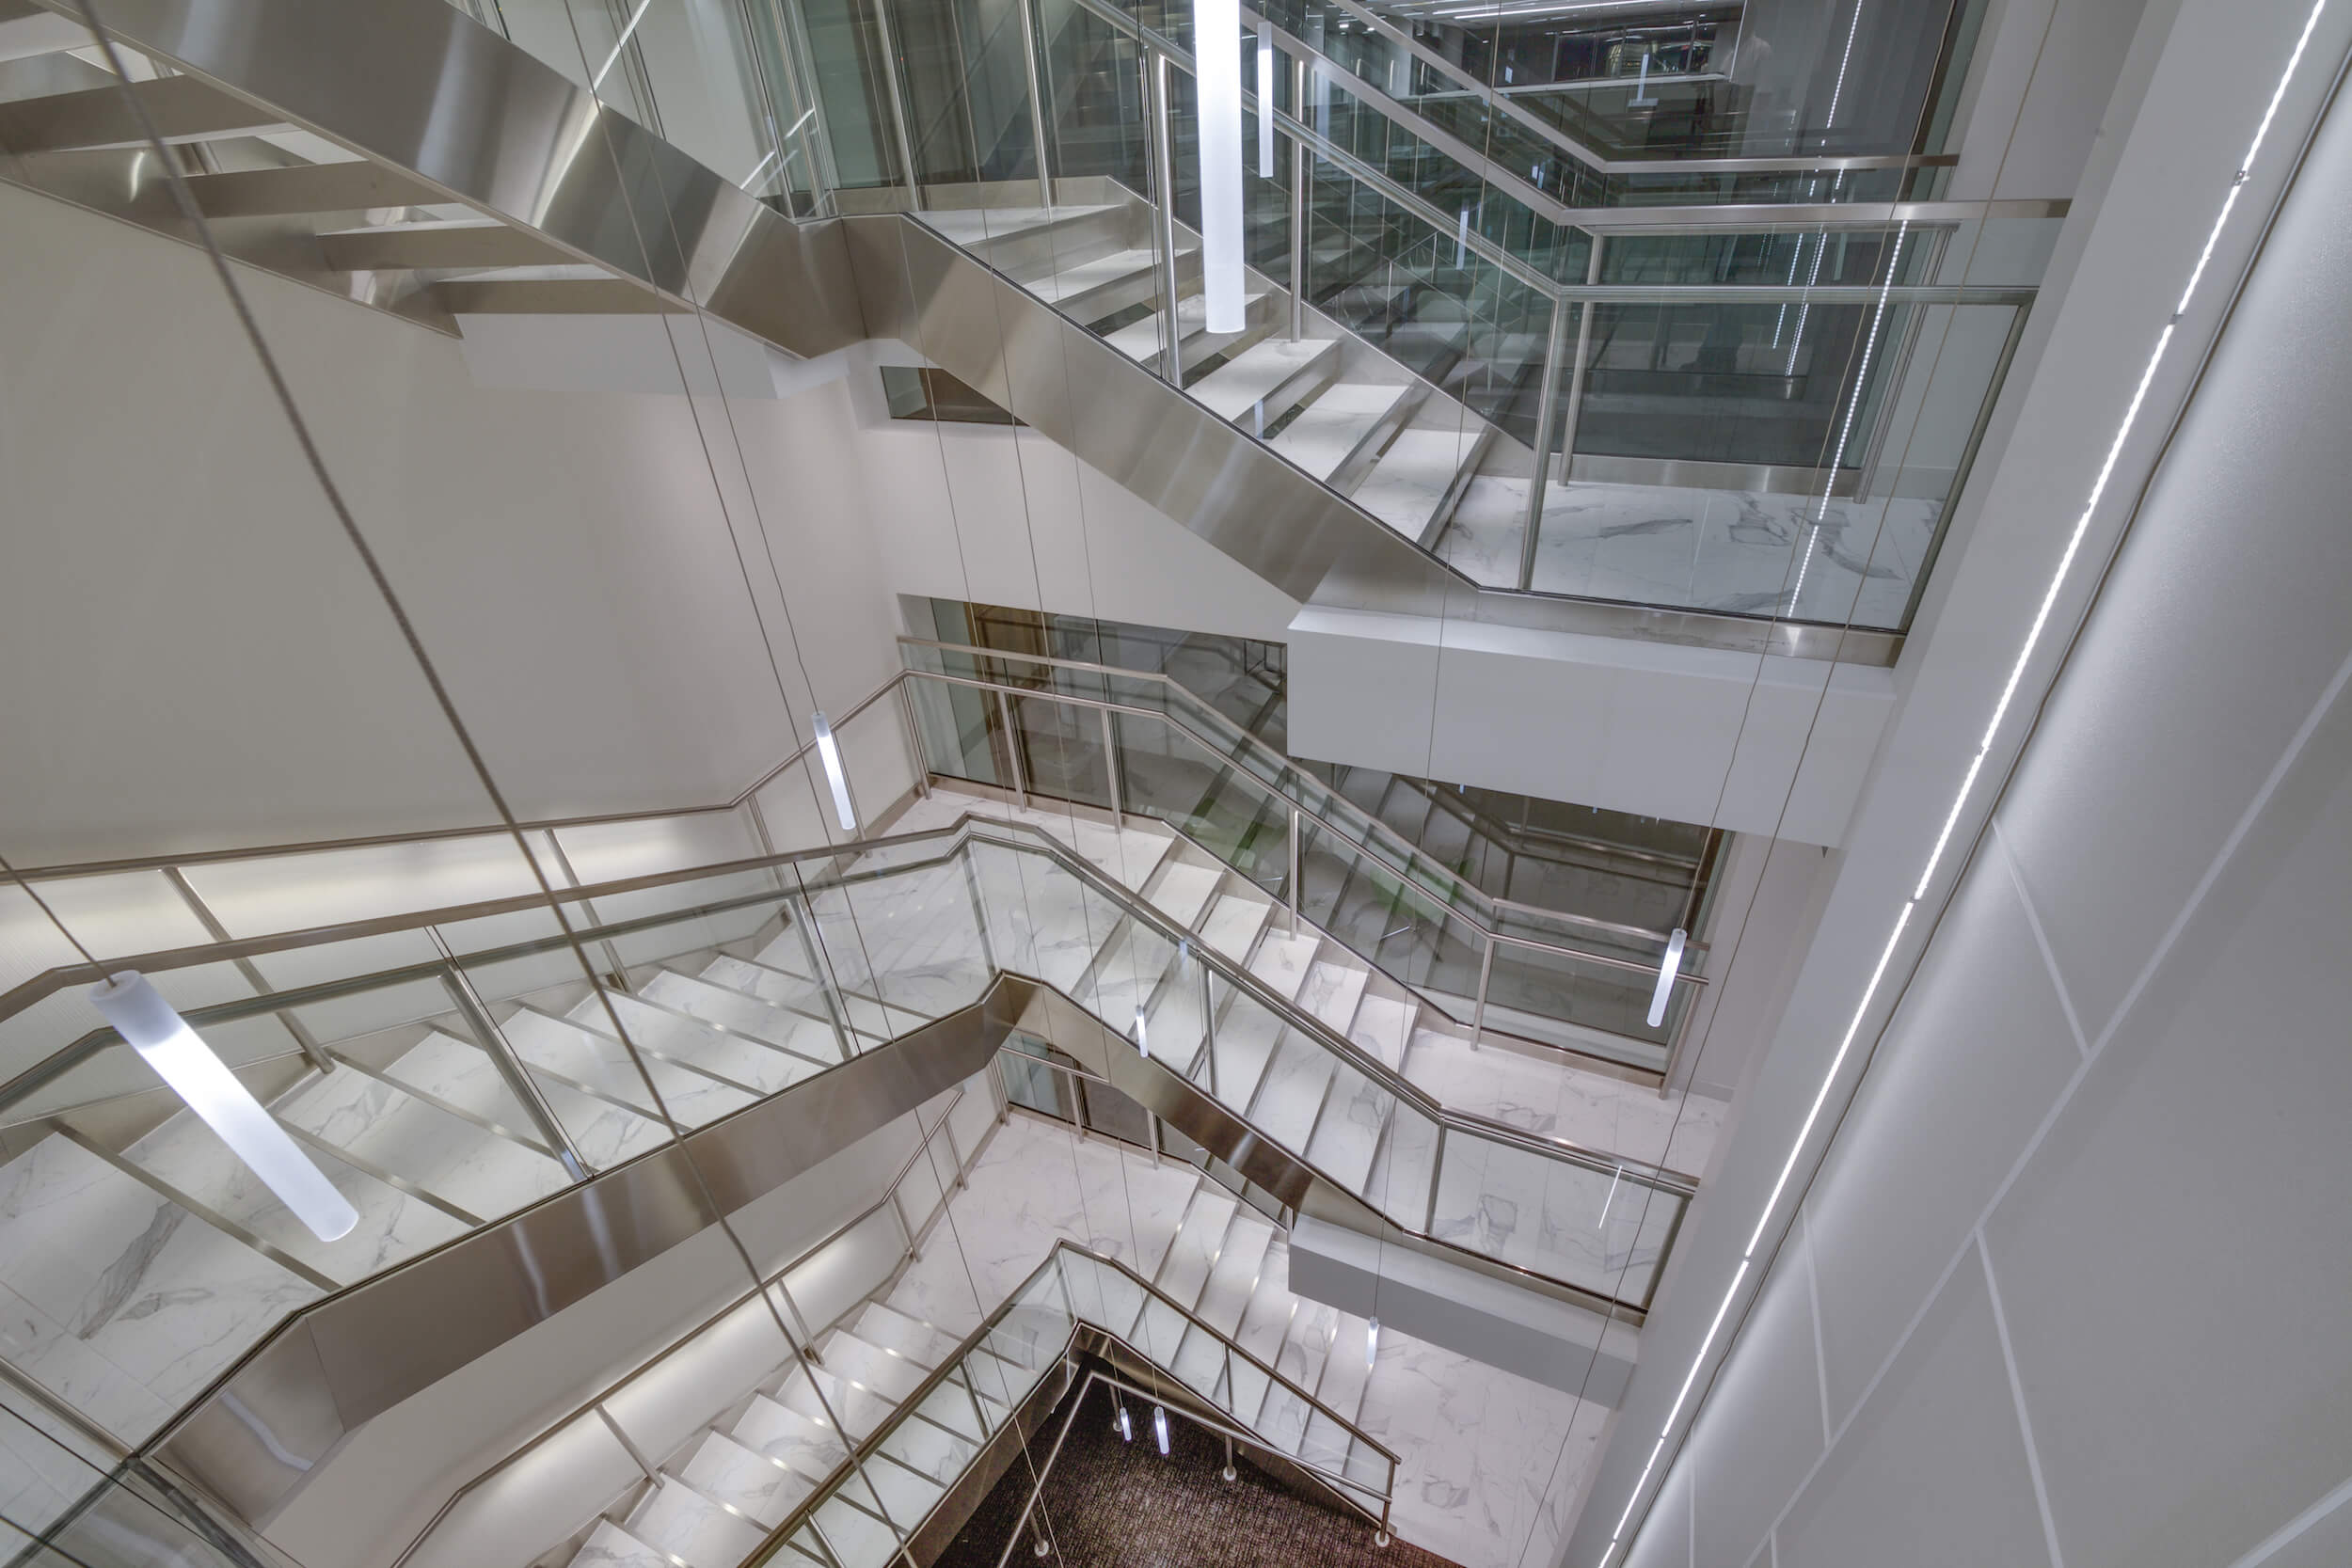 Stairwell of The Bozzuto Group Offices in Greenbelt, VA